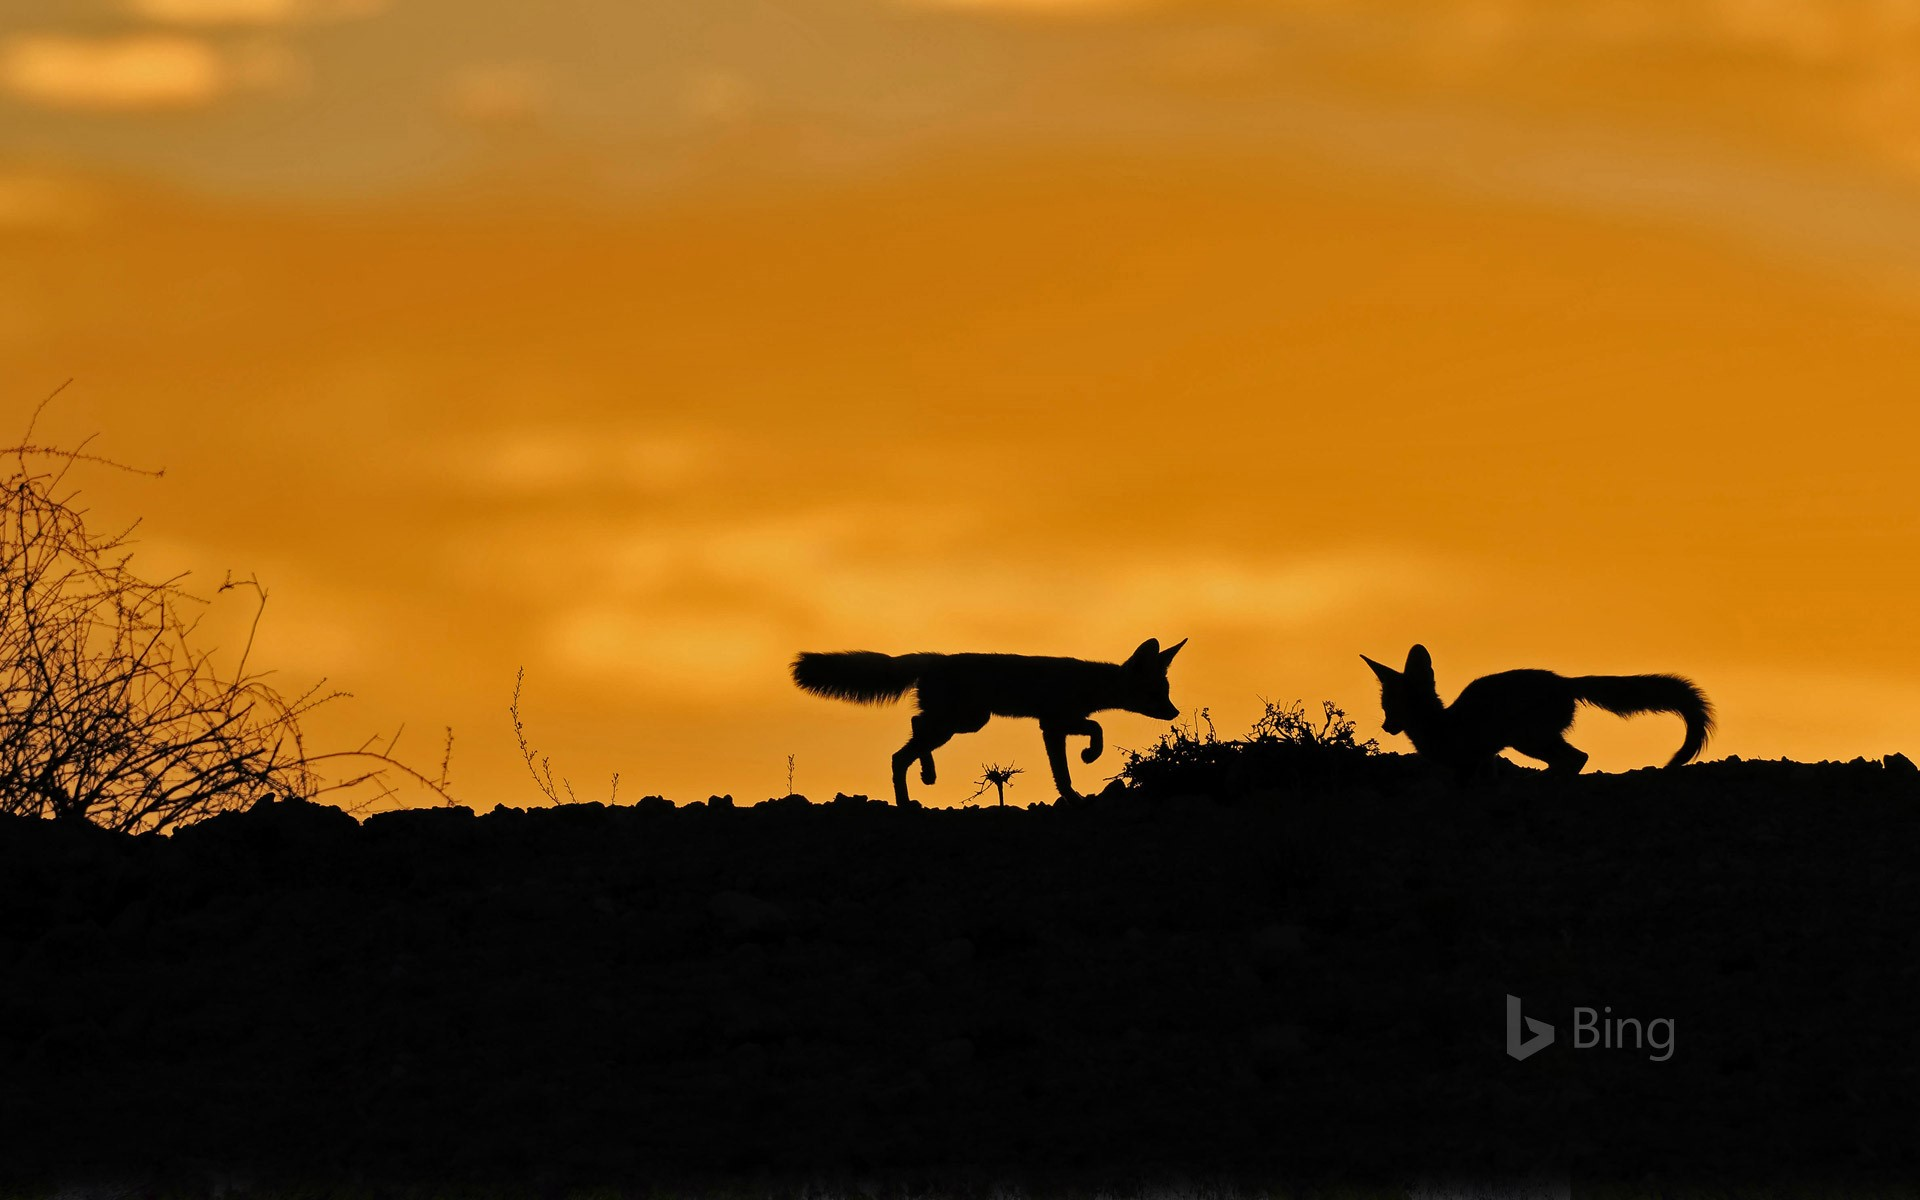 Cape foxes in the Kalahari Desert, South Africa